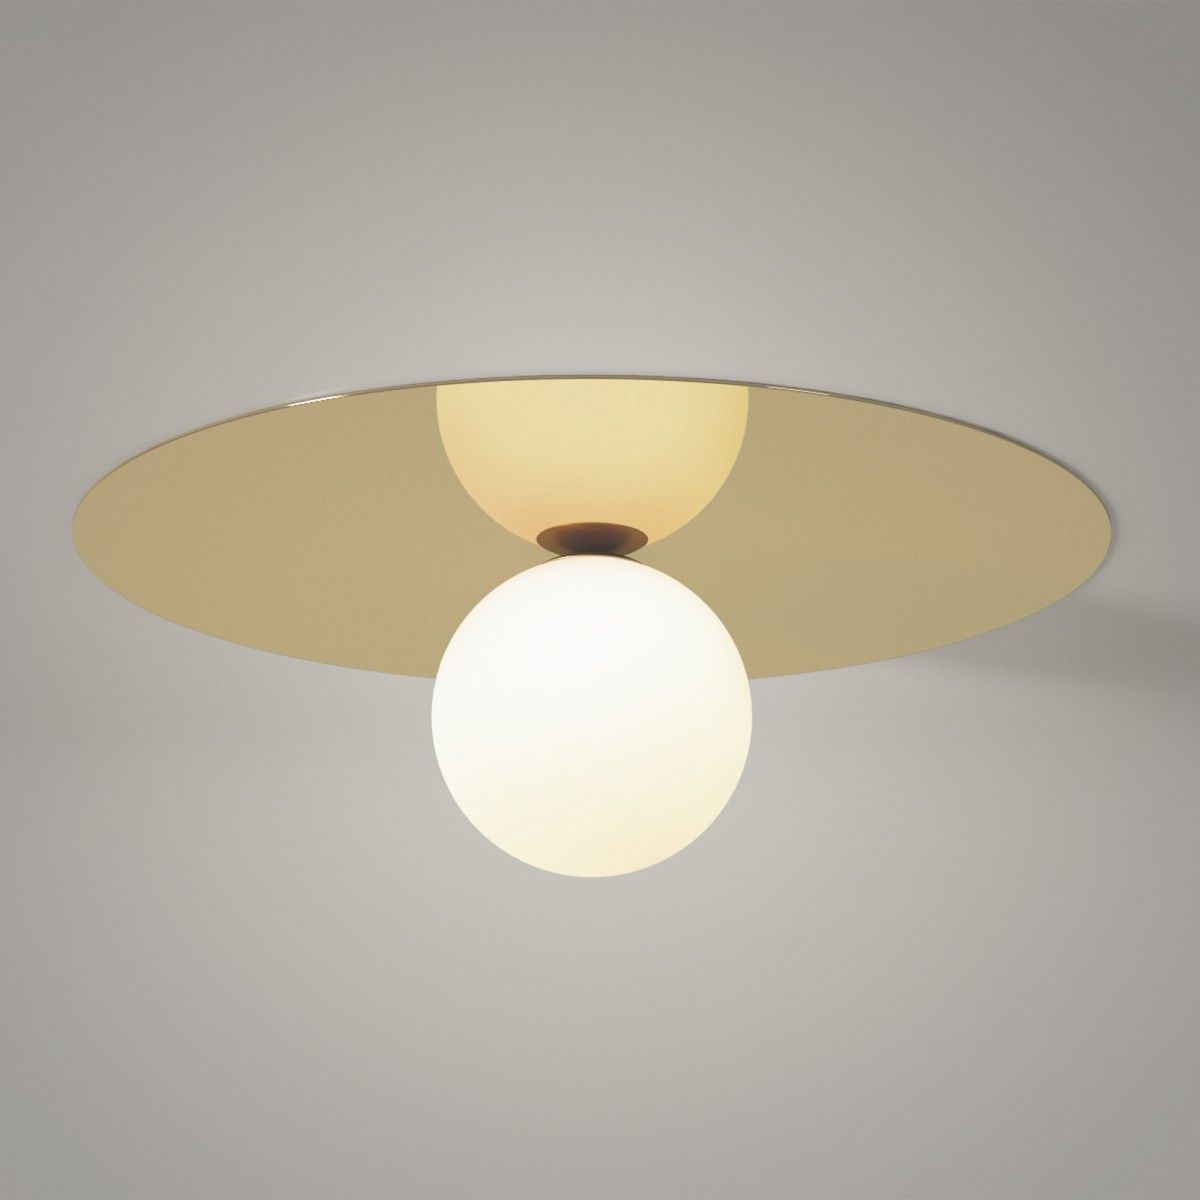 Plate And Sphere 1 Ceiling Areti Ceiling Lights Ceiling